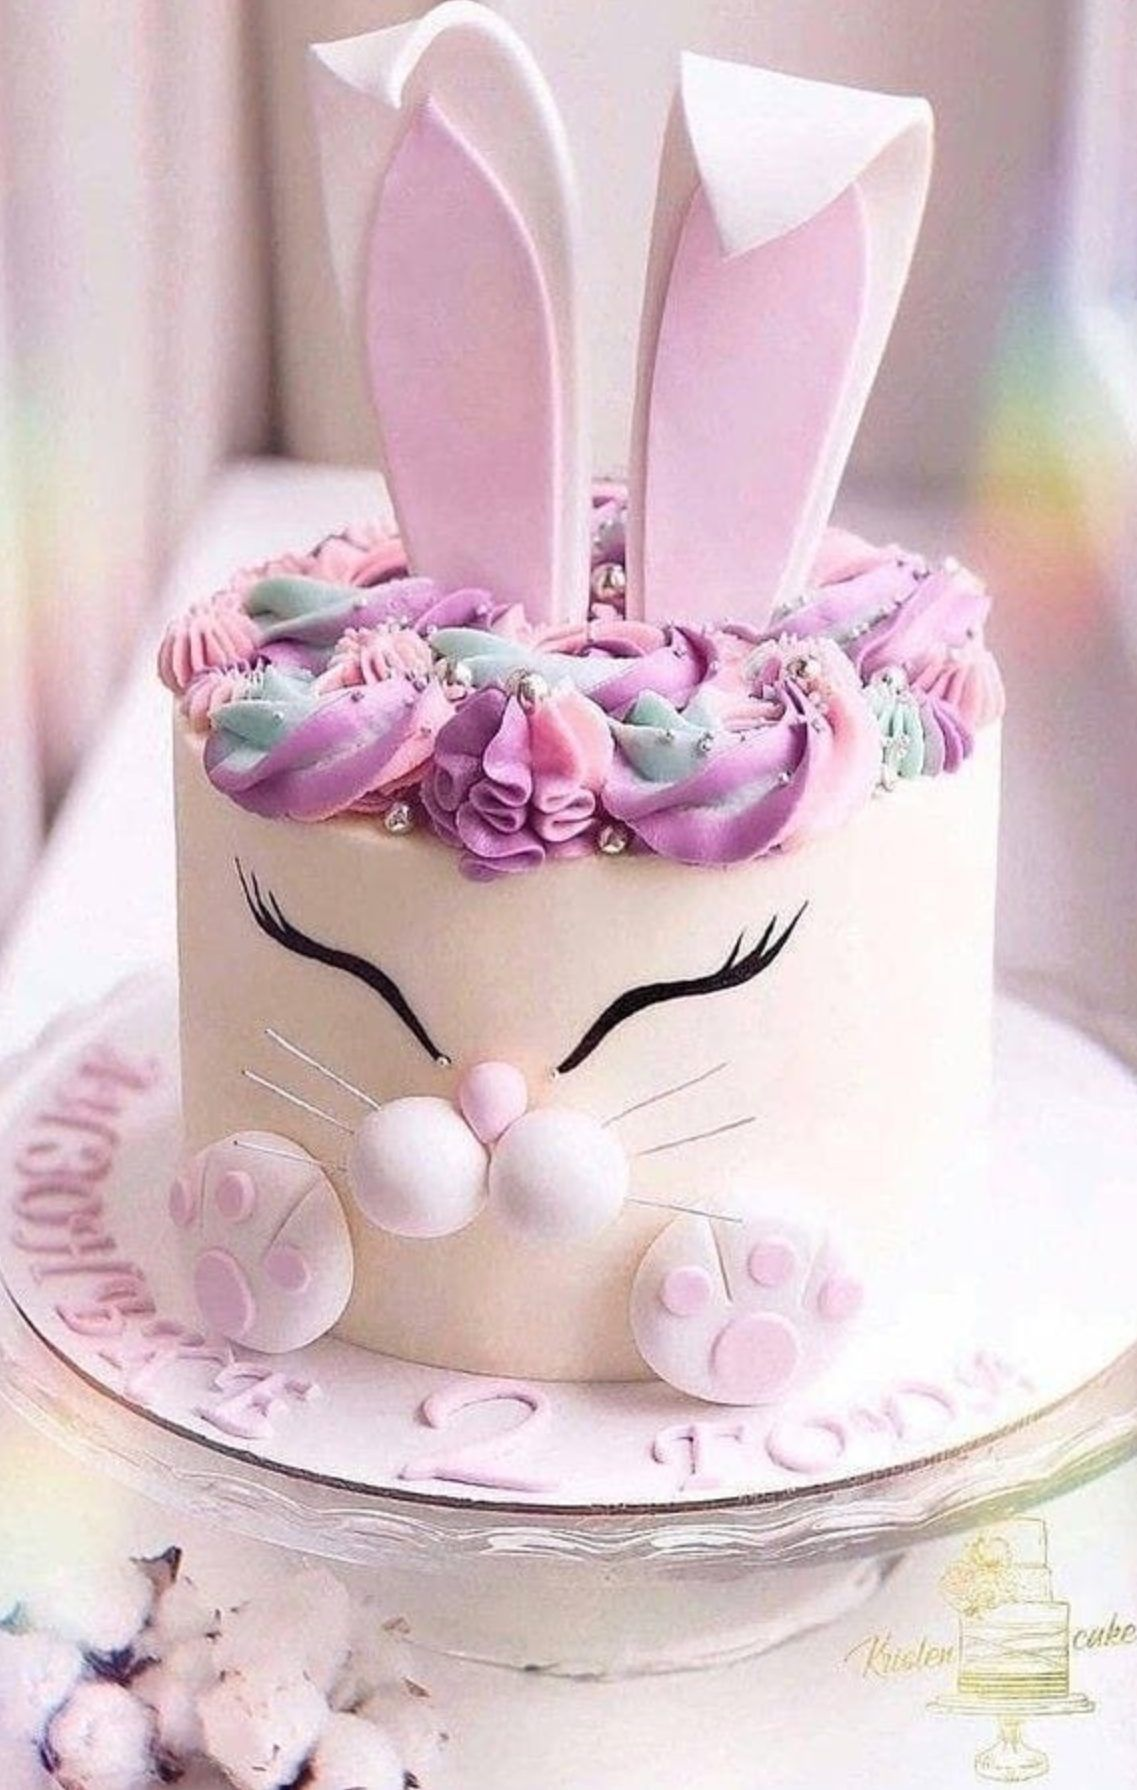 40 Best Easter Cake Ideas That Are Easy To Recreate In 2021 Easter Cake Designs Easter Bunny Cake Bunny Birthday Cake